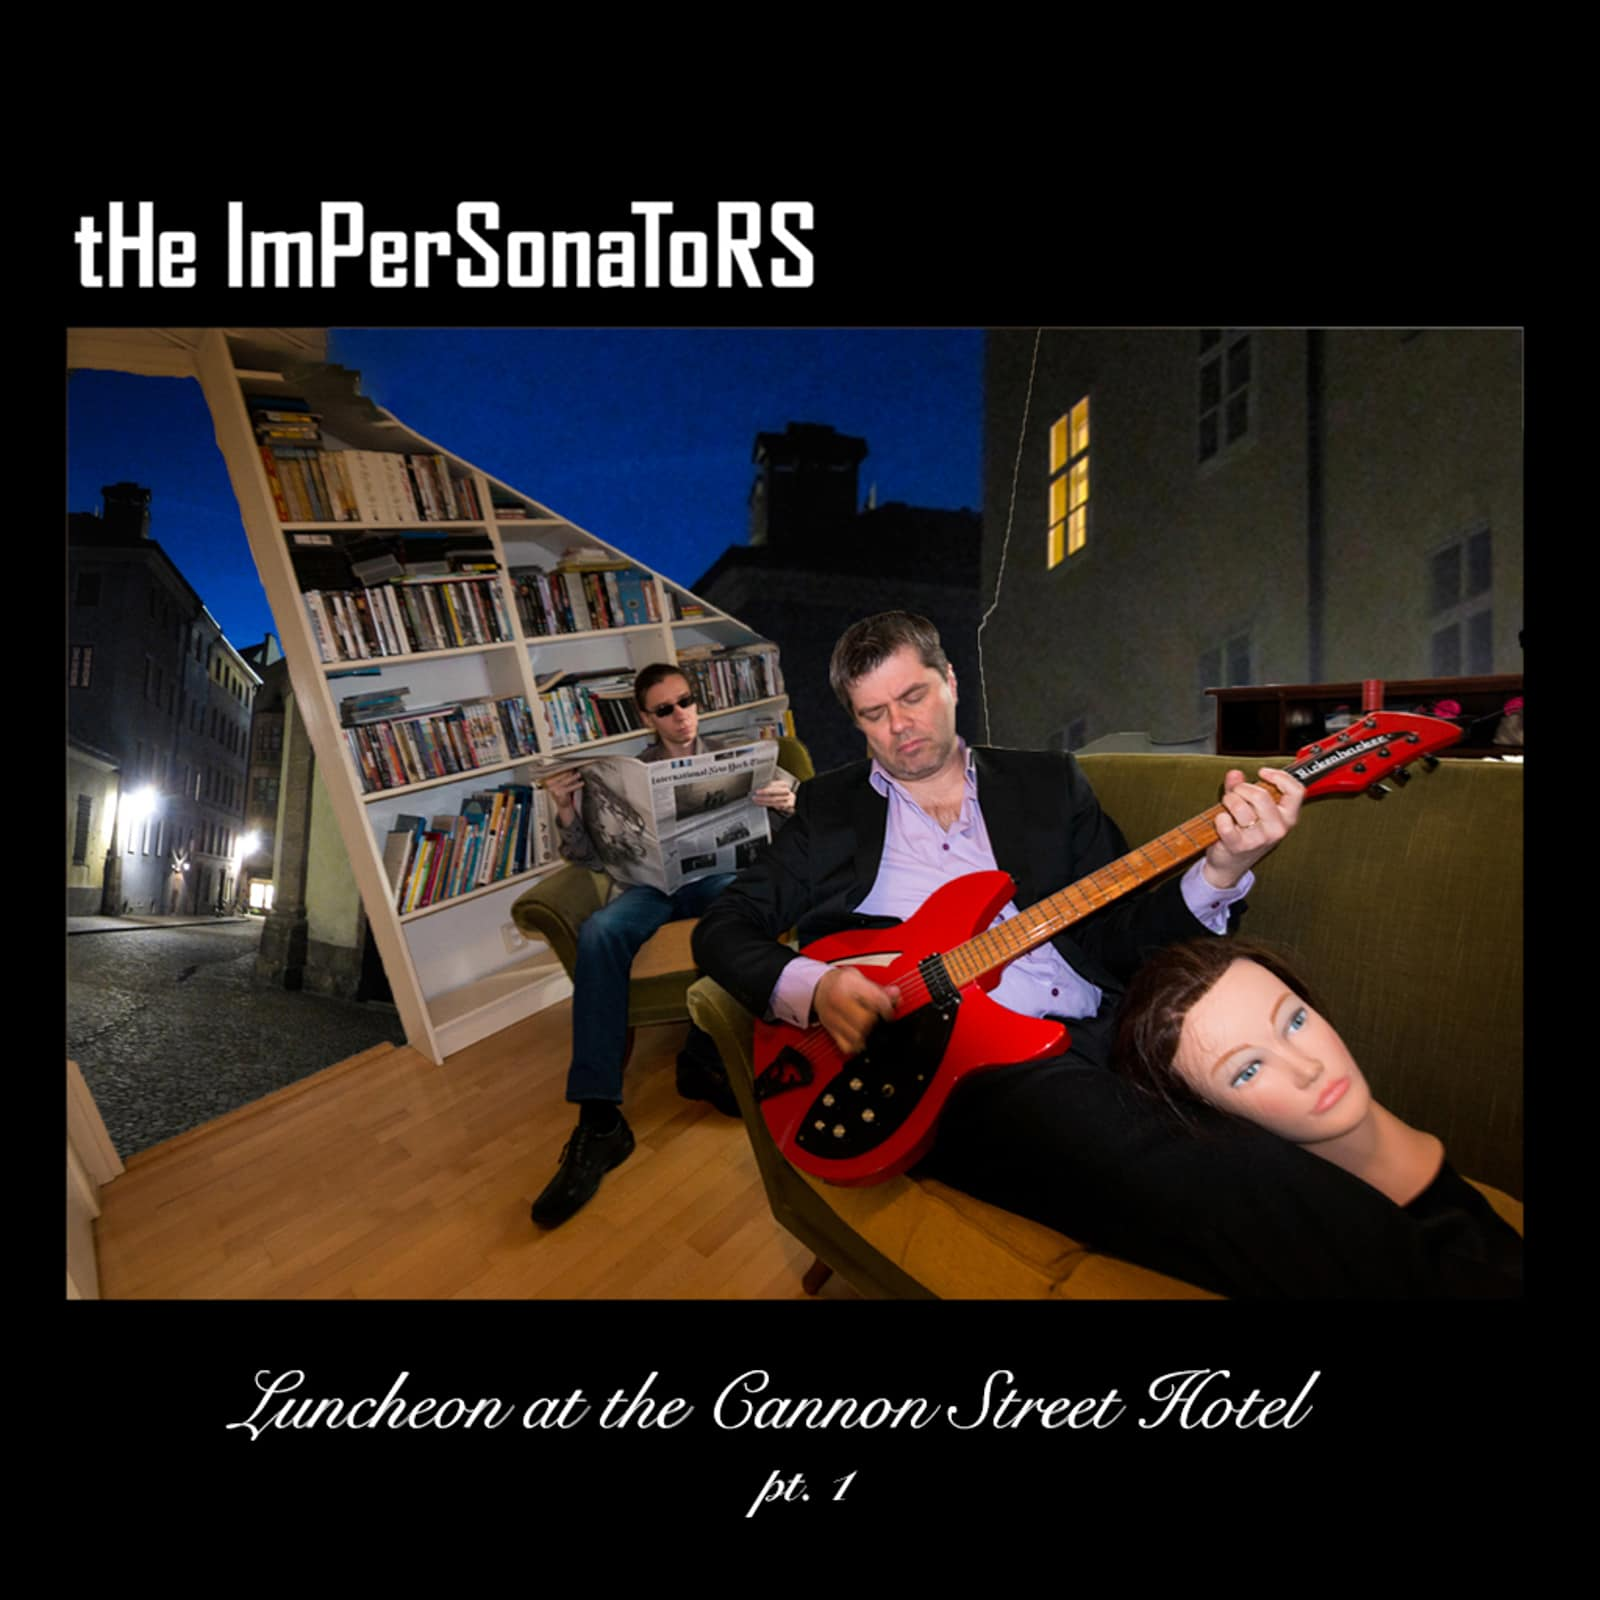 Cannon, Street, Hotel, The Impersonators